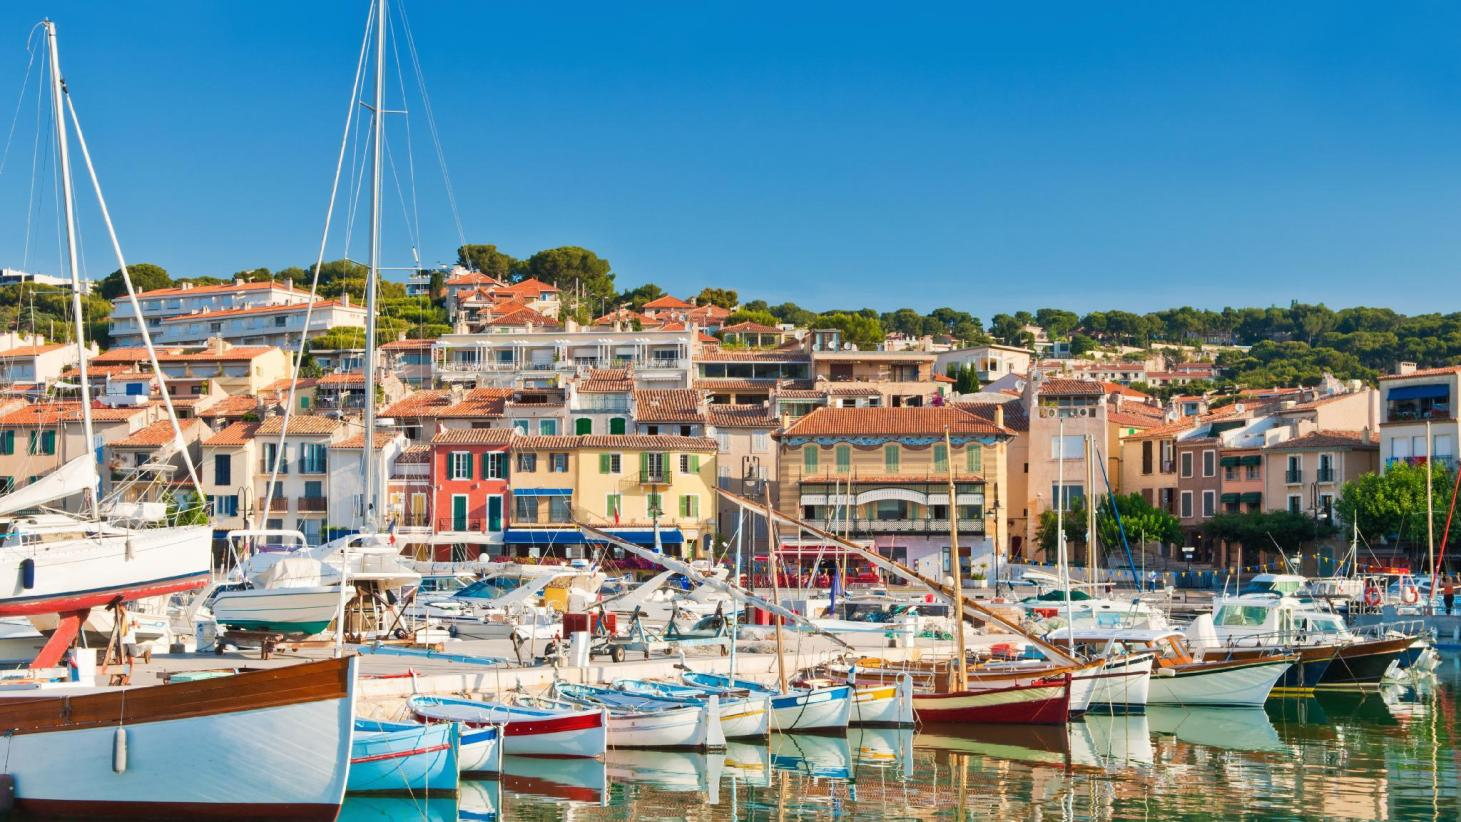 10 Best Cassis Hotels Hd Photos Reviews Of Hotels In Cassis France